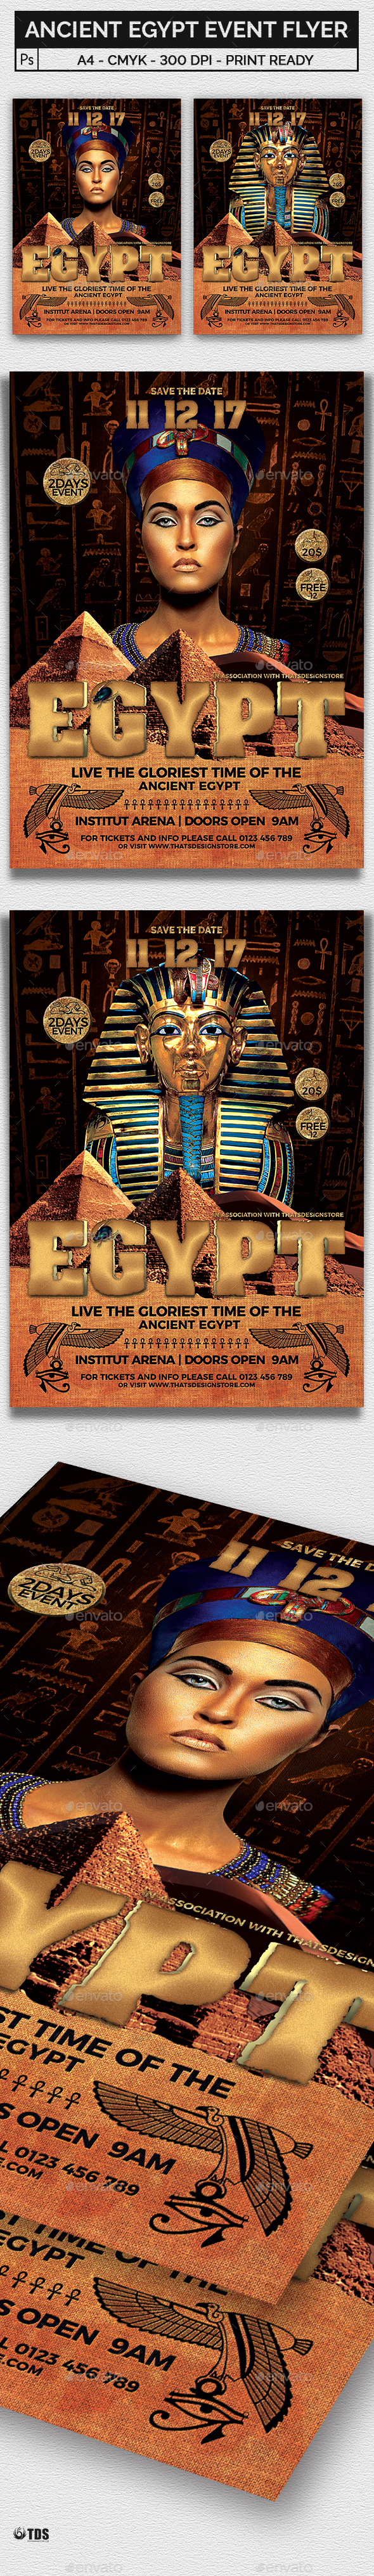 Ancient Egypt Event Flyer Template - Miscellaneous Events